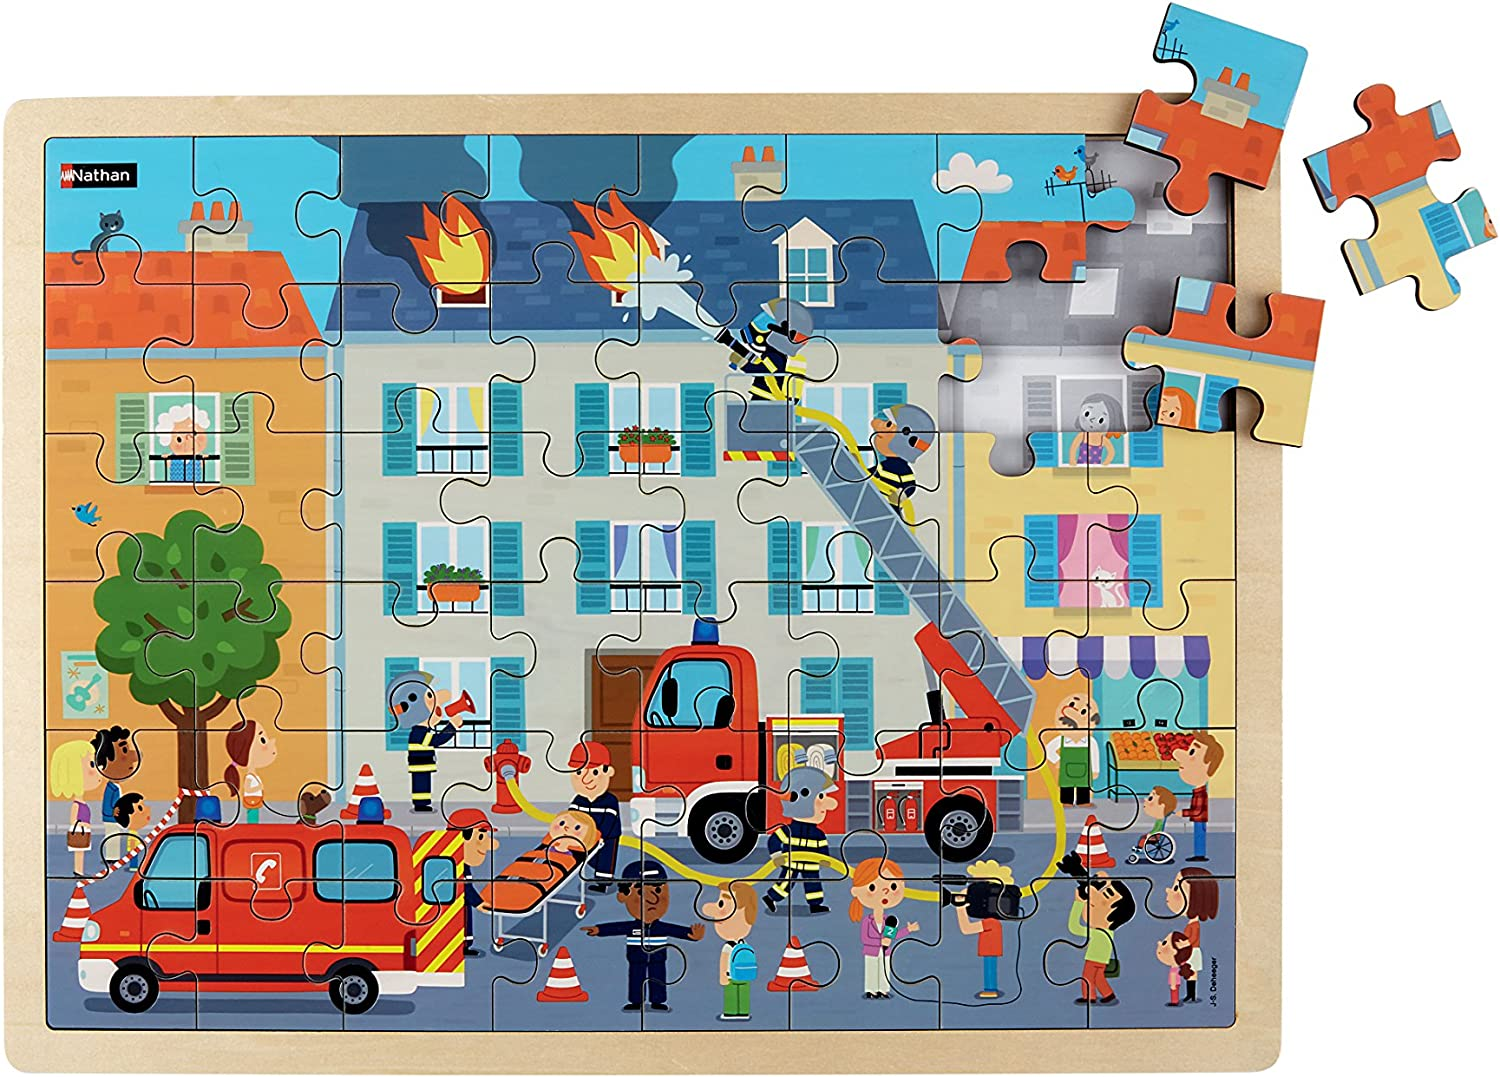 Nathan 387177 48 Pieces Firefighters Large Wooden Jigsaw Puzzle, Multi color